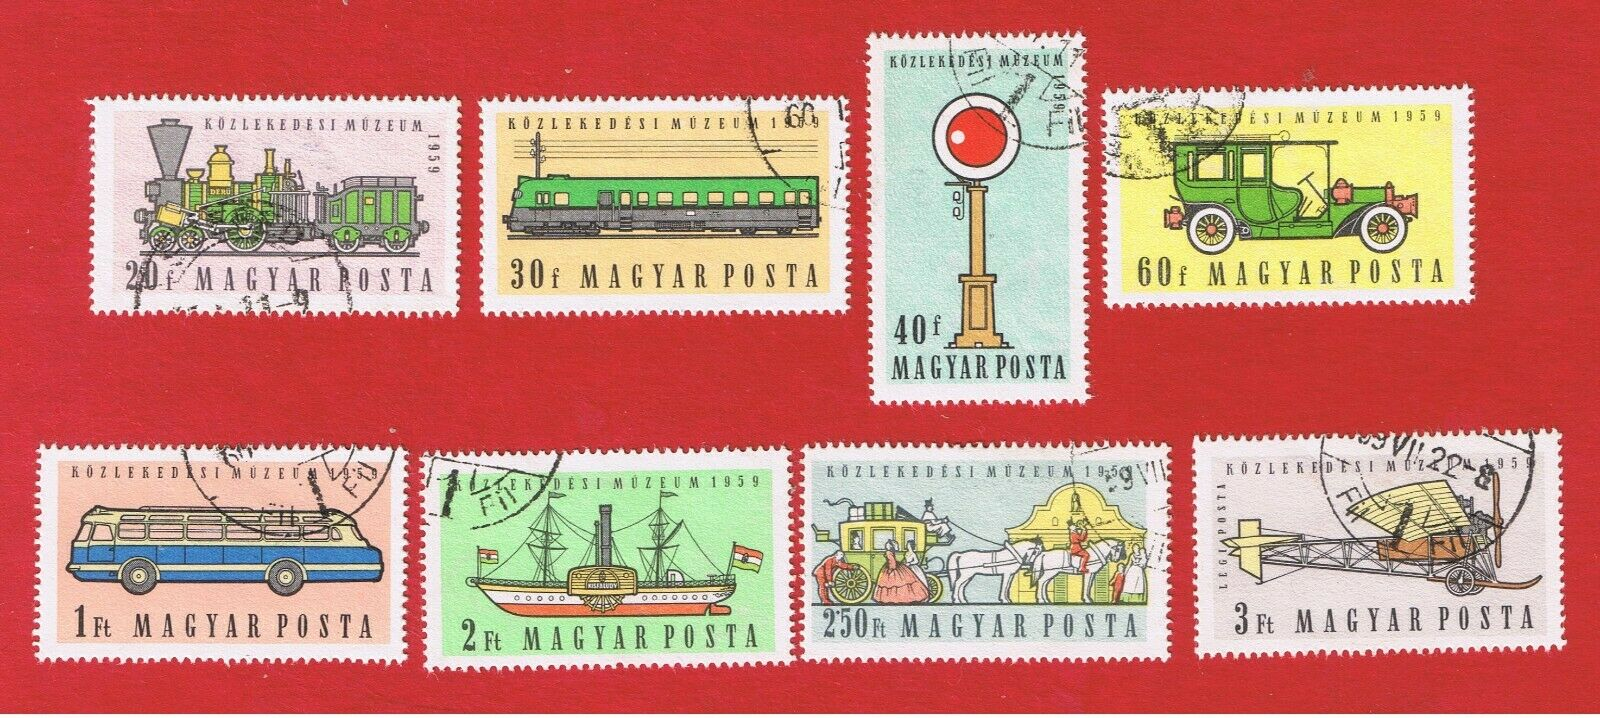 Hungary 1224-1230 C201 VF Used Transportation Free S/H - $2.00